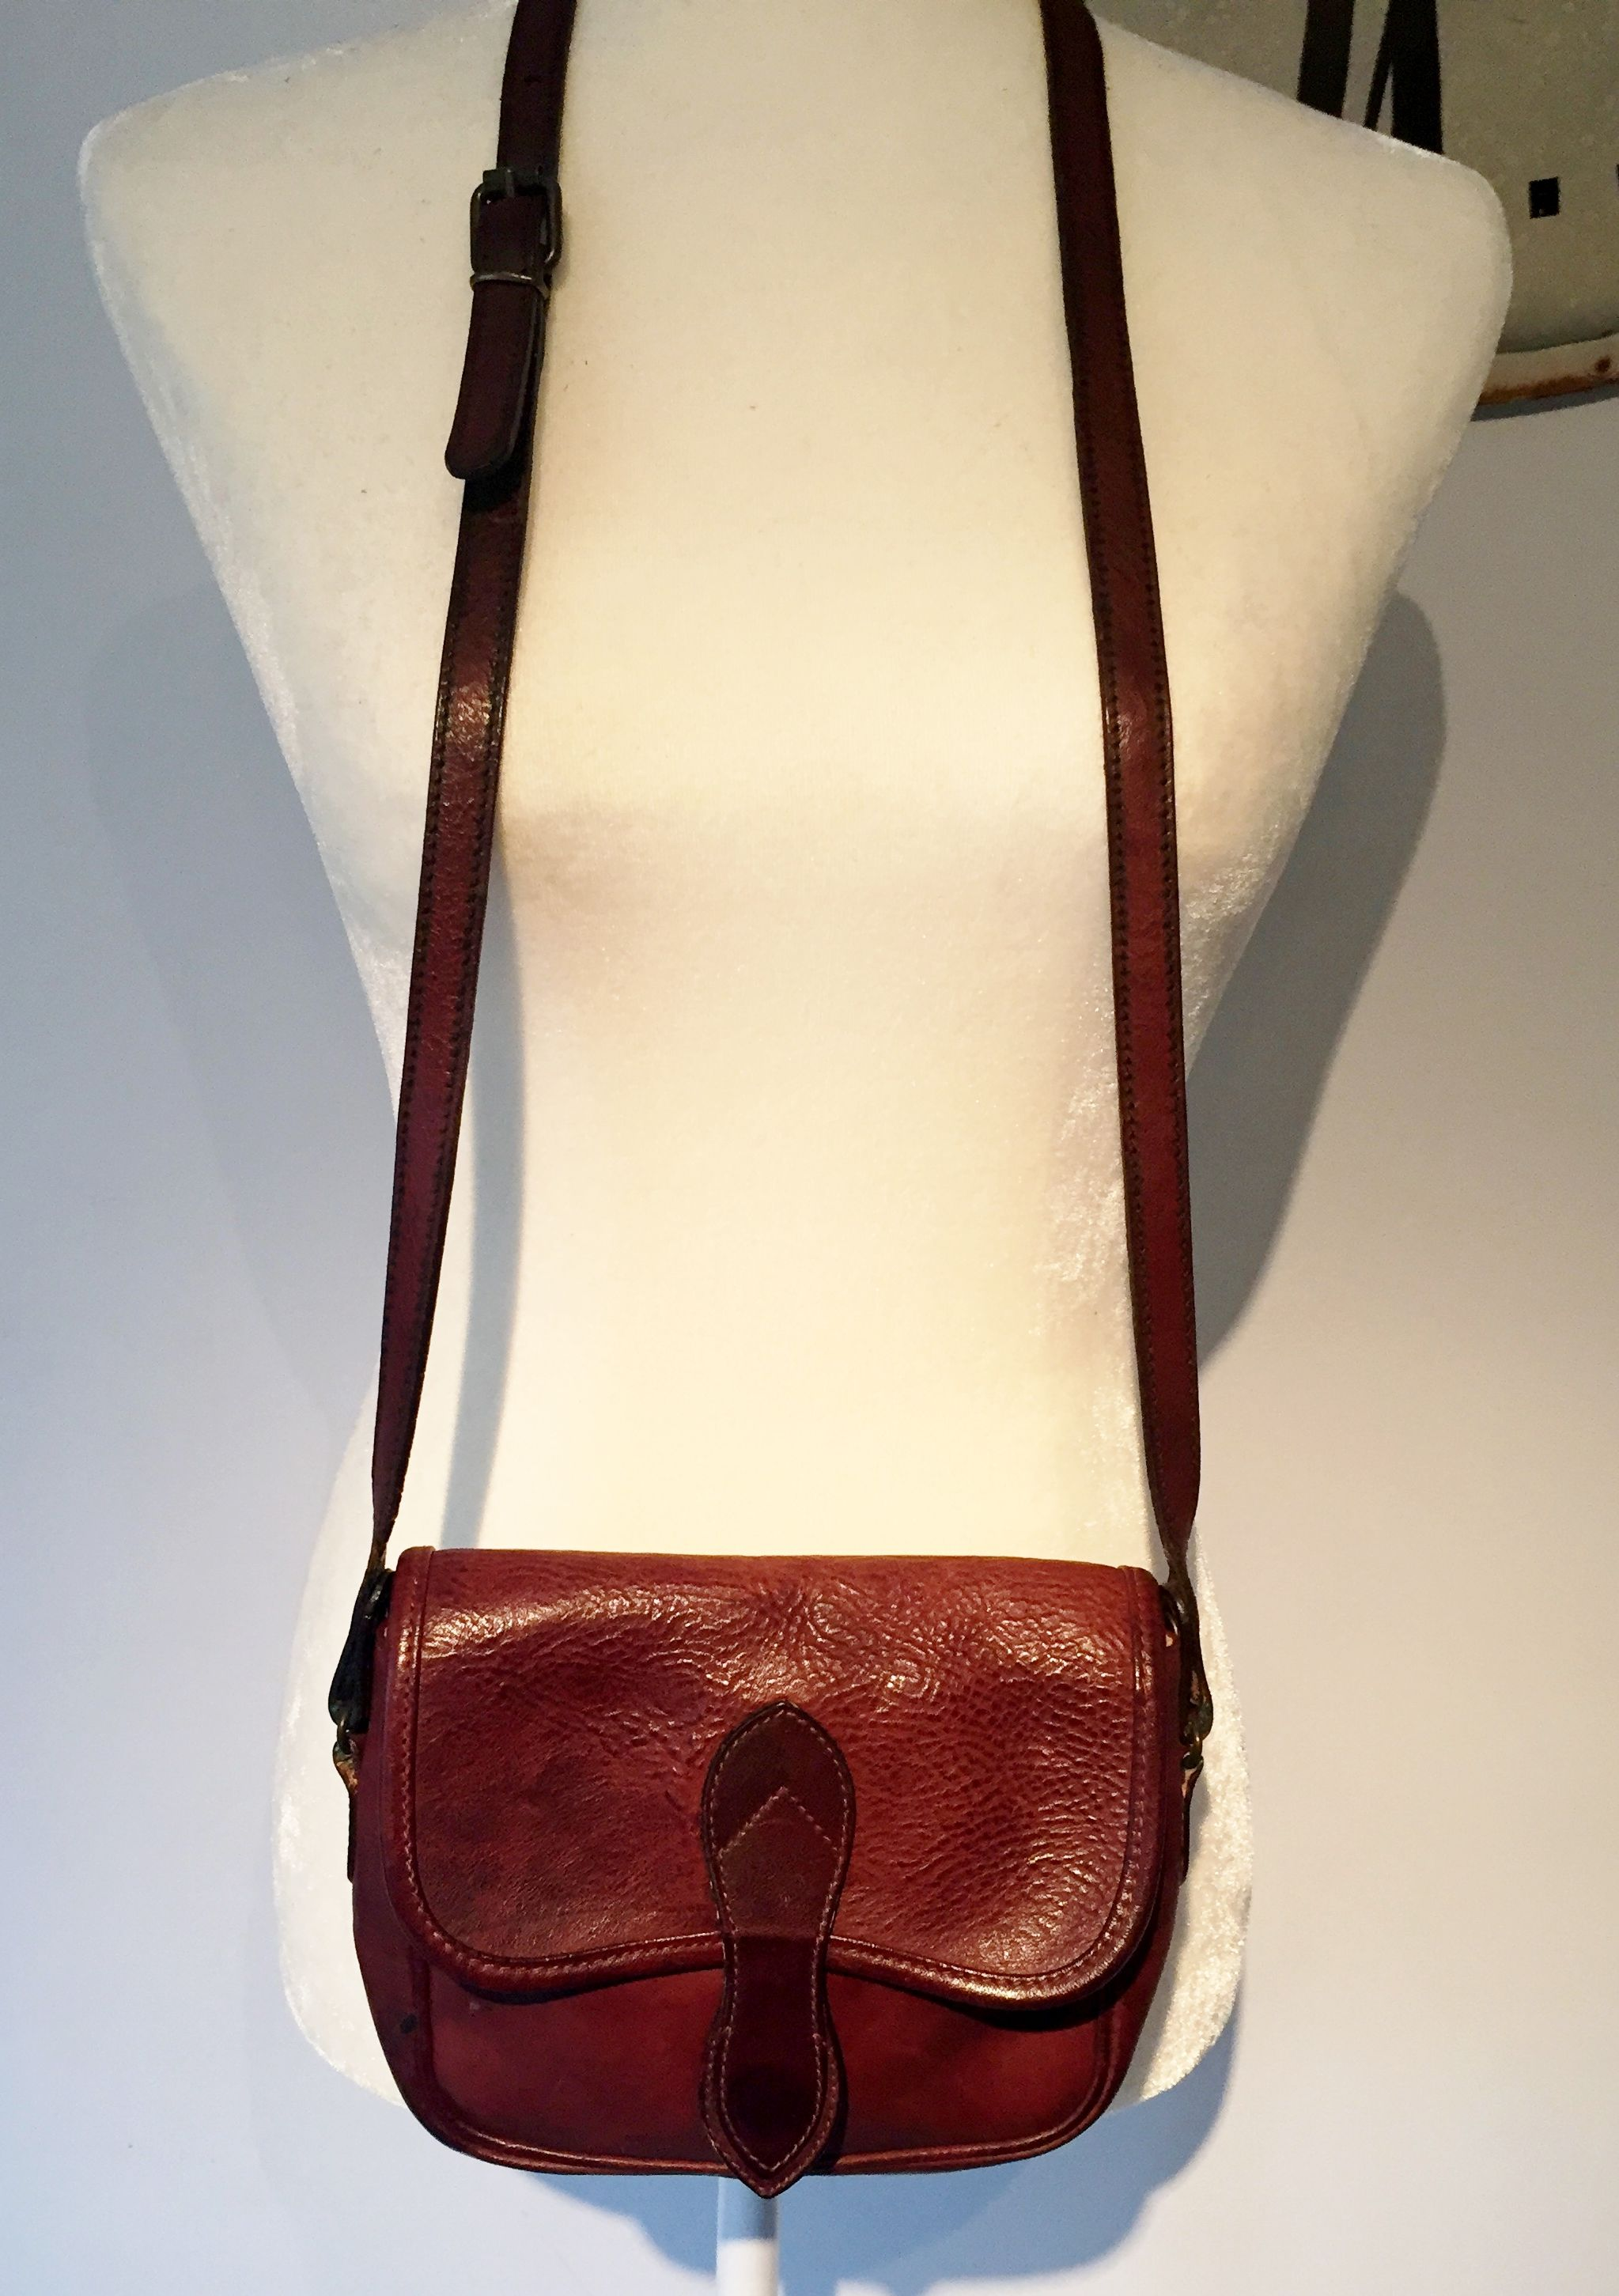 63d1c0b4794 Vintage Laura Ashley Small Cross body Bag Rare Find Made in Italy Brass  Hardware